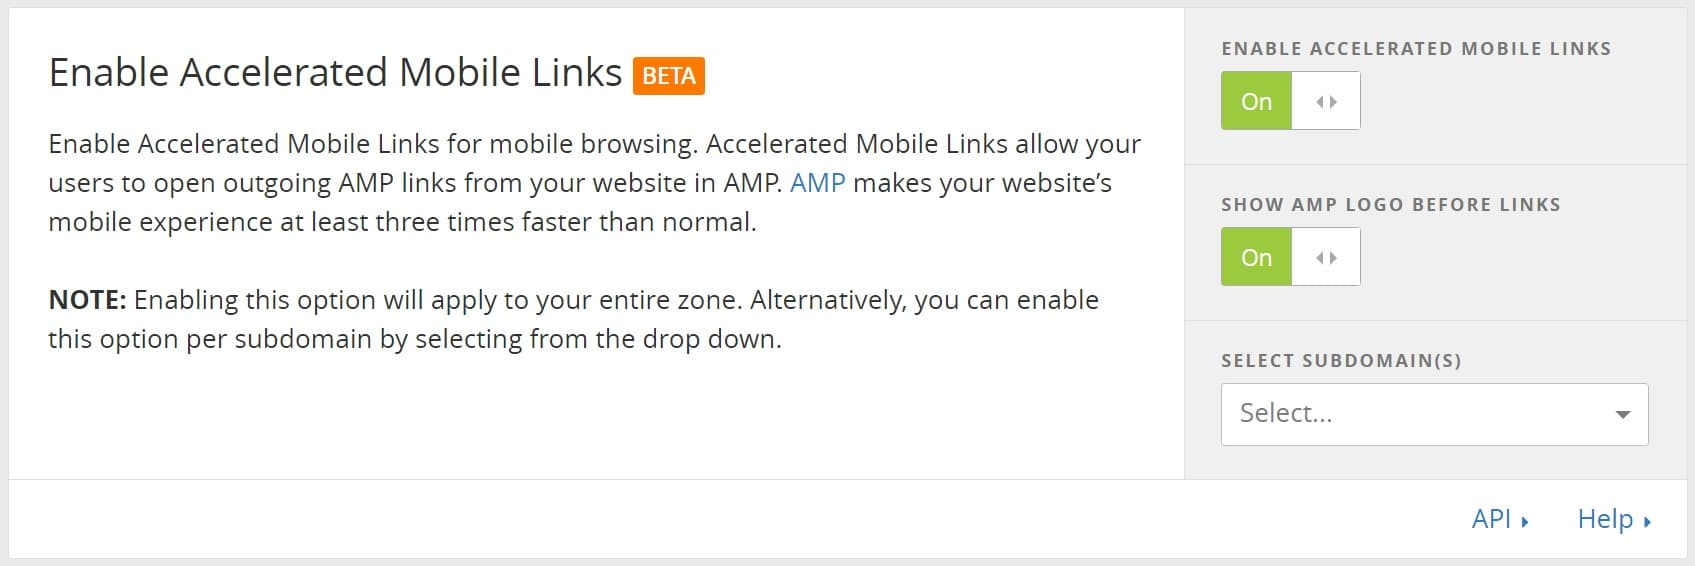 Accelerated Mobile Links Cloudflare